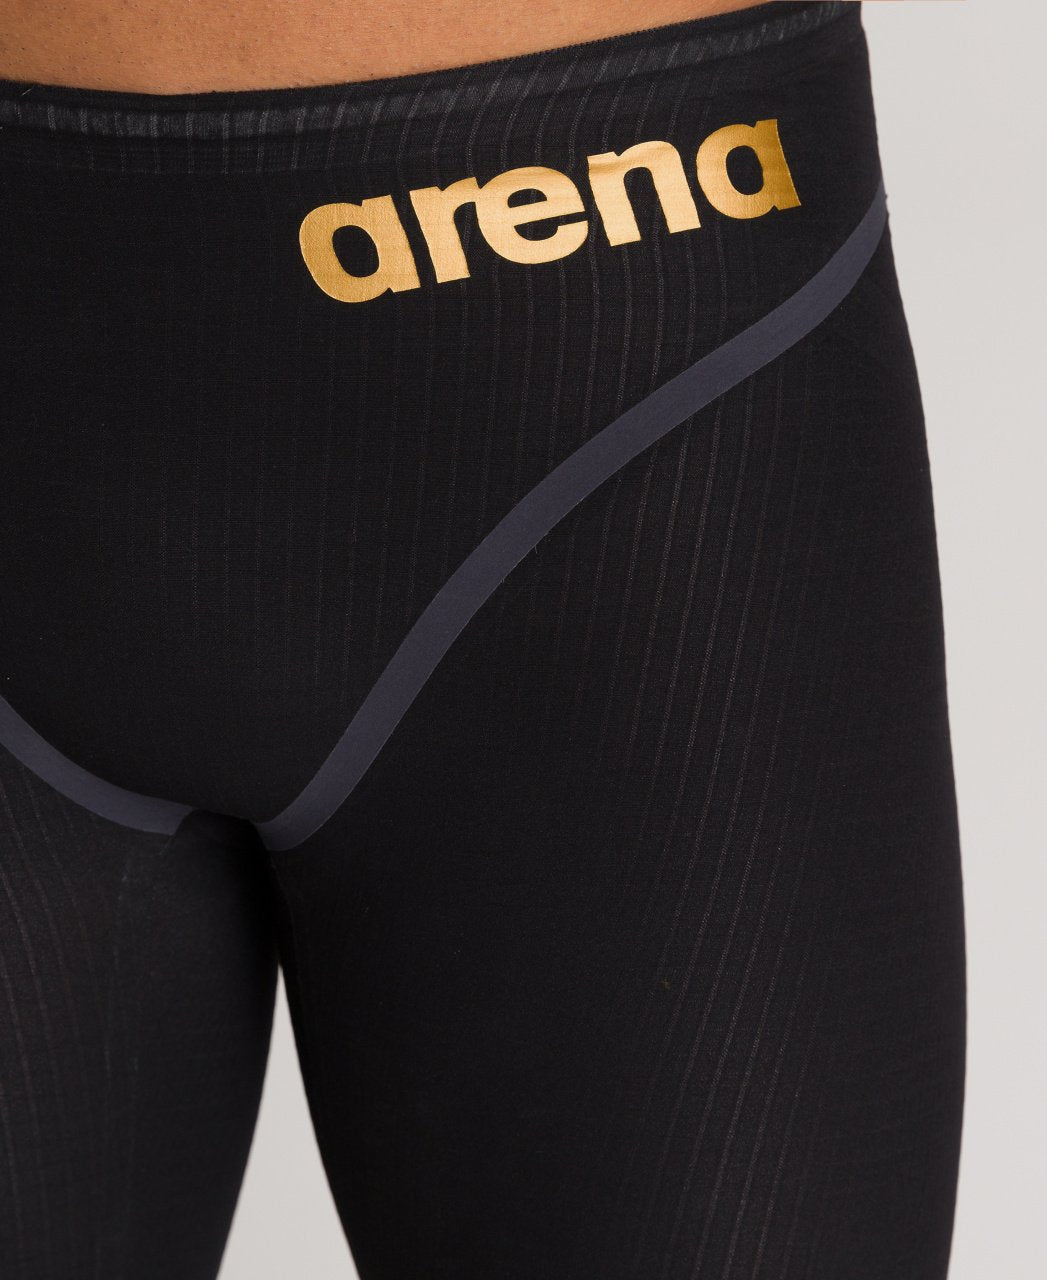 M Pwsk Carbon Core FX Jammer black/gold | Arena